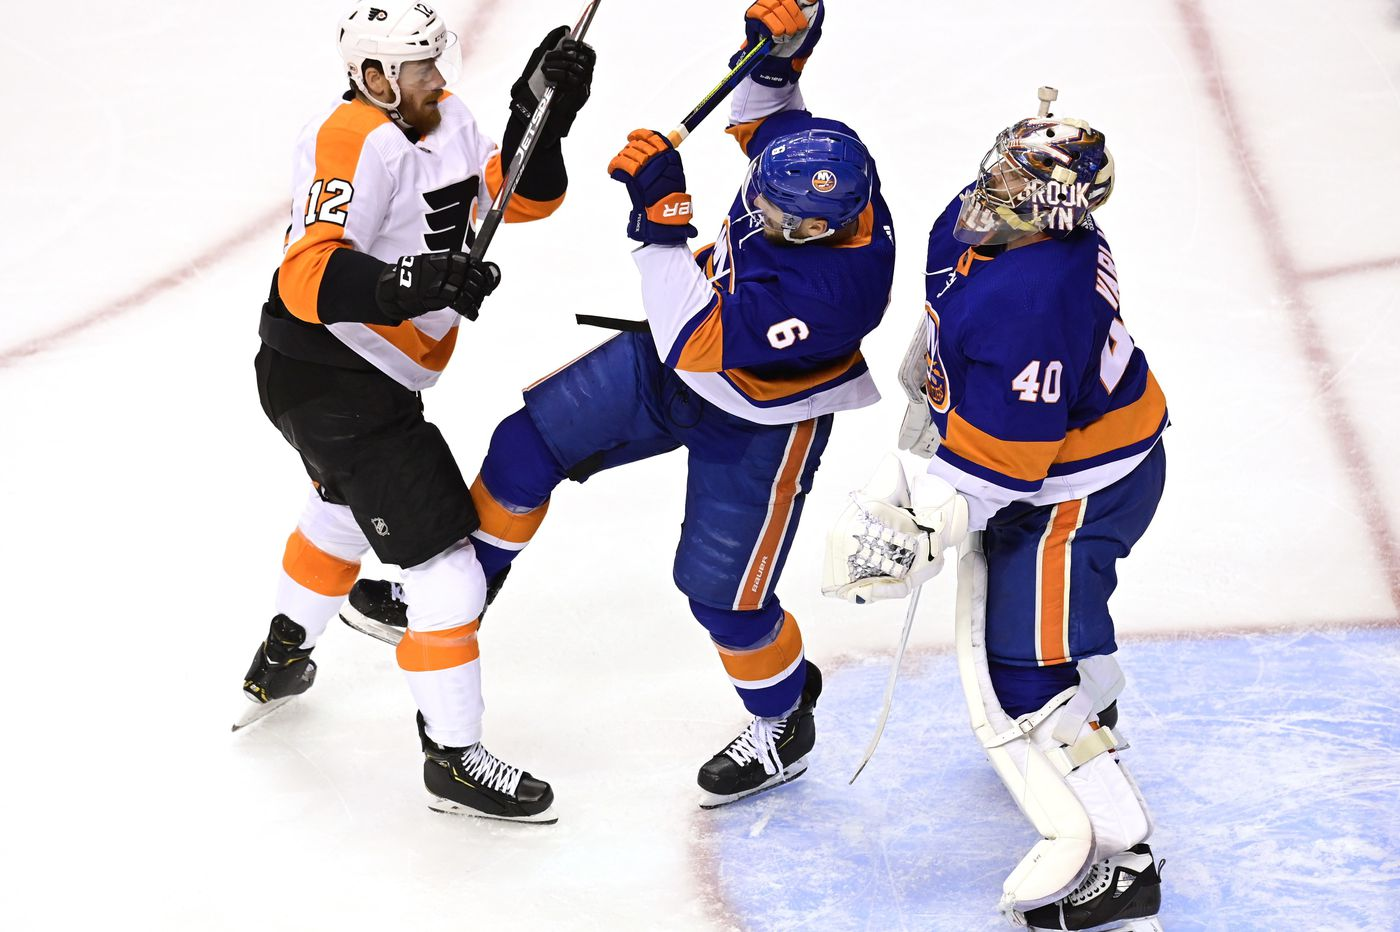 Flyers and Islanders will put it all on the line in Game 7